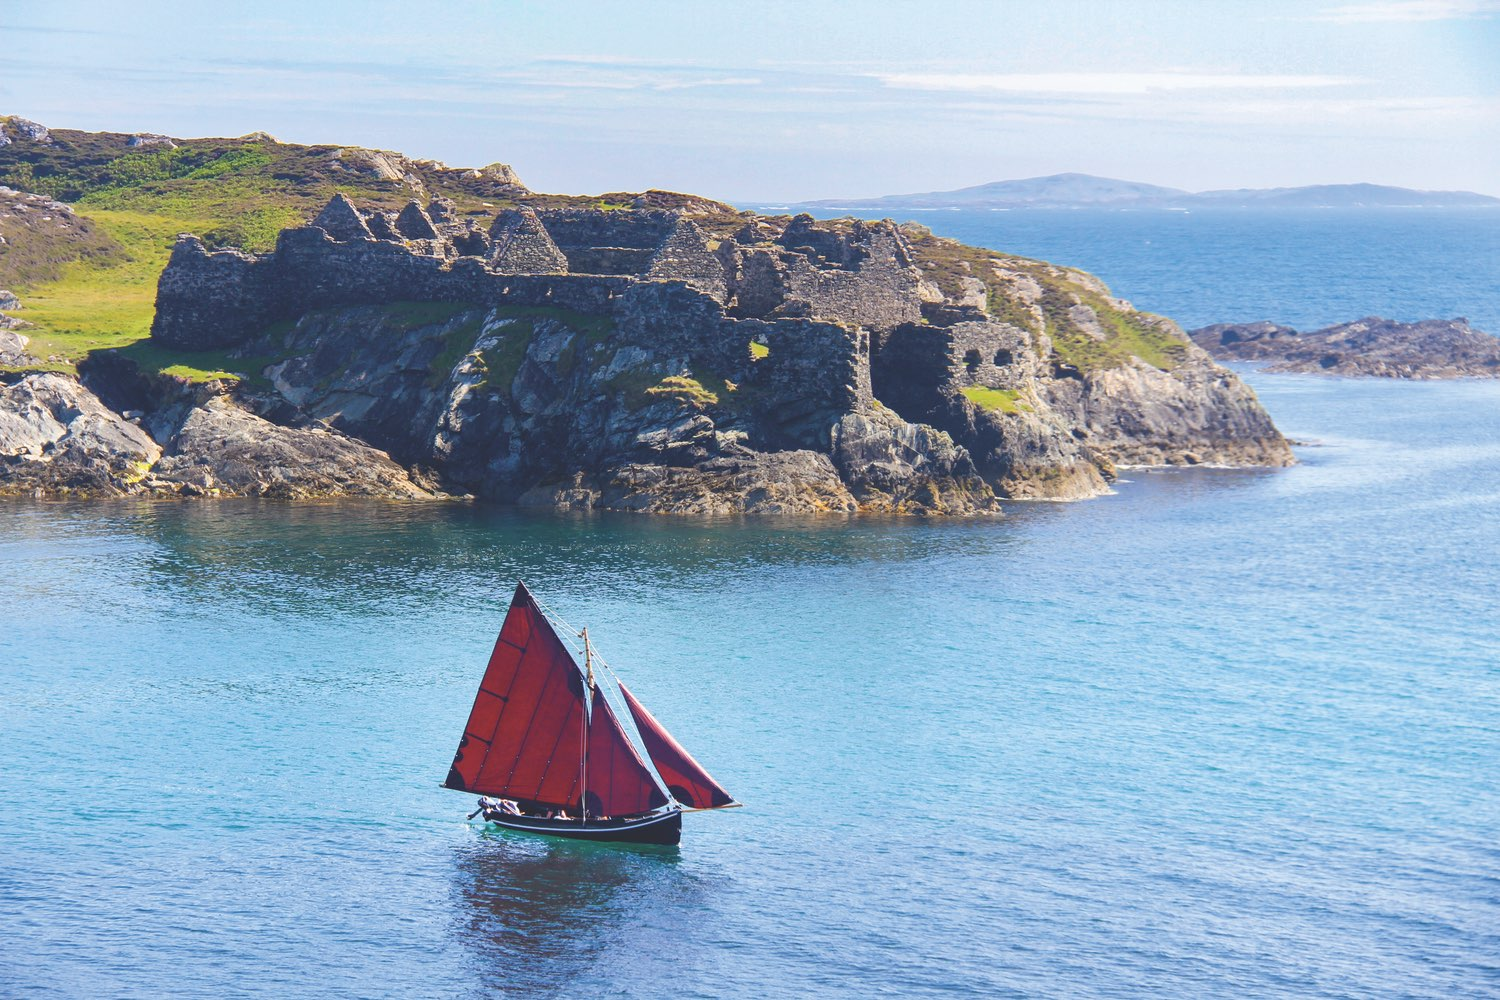 An Inishbofin púcán, a traditional boat of Connemara, in full sail. Photo by Marie Coyne.